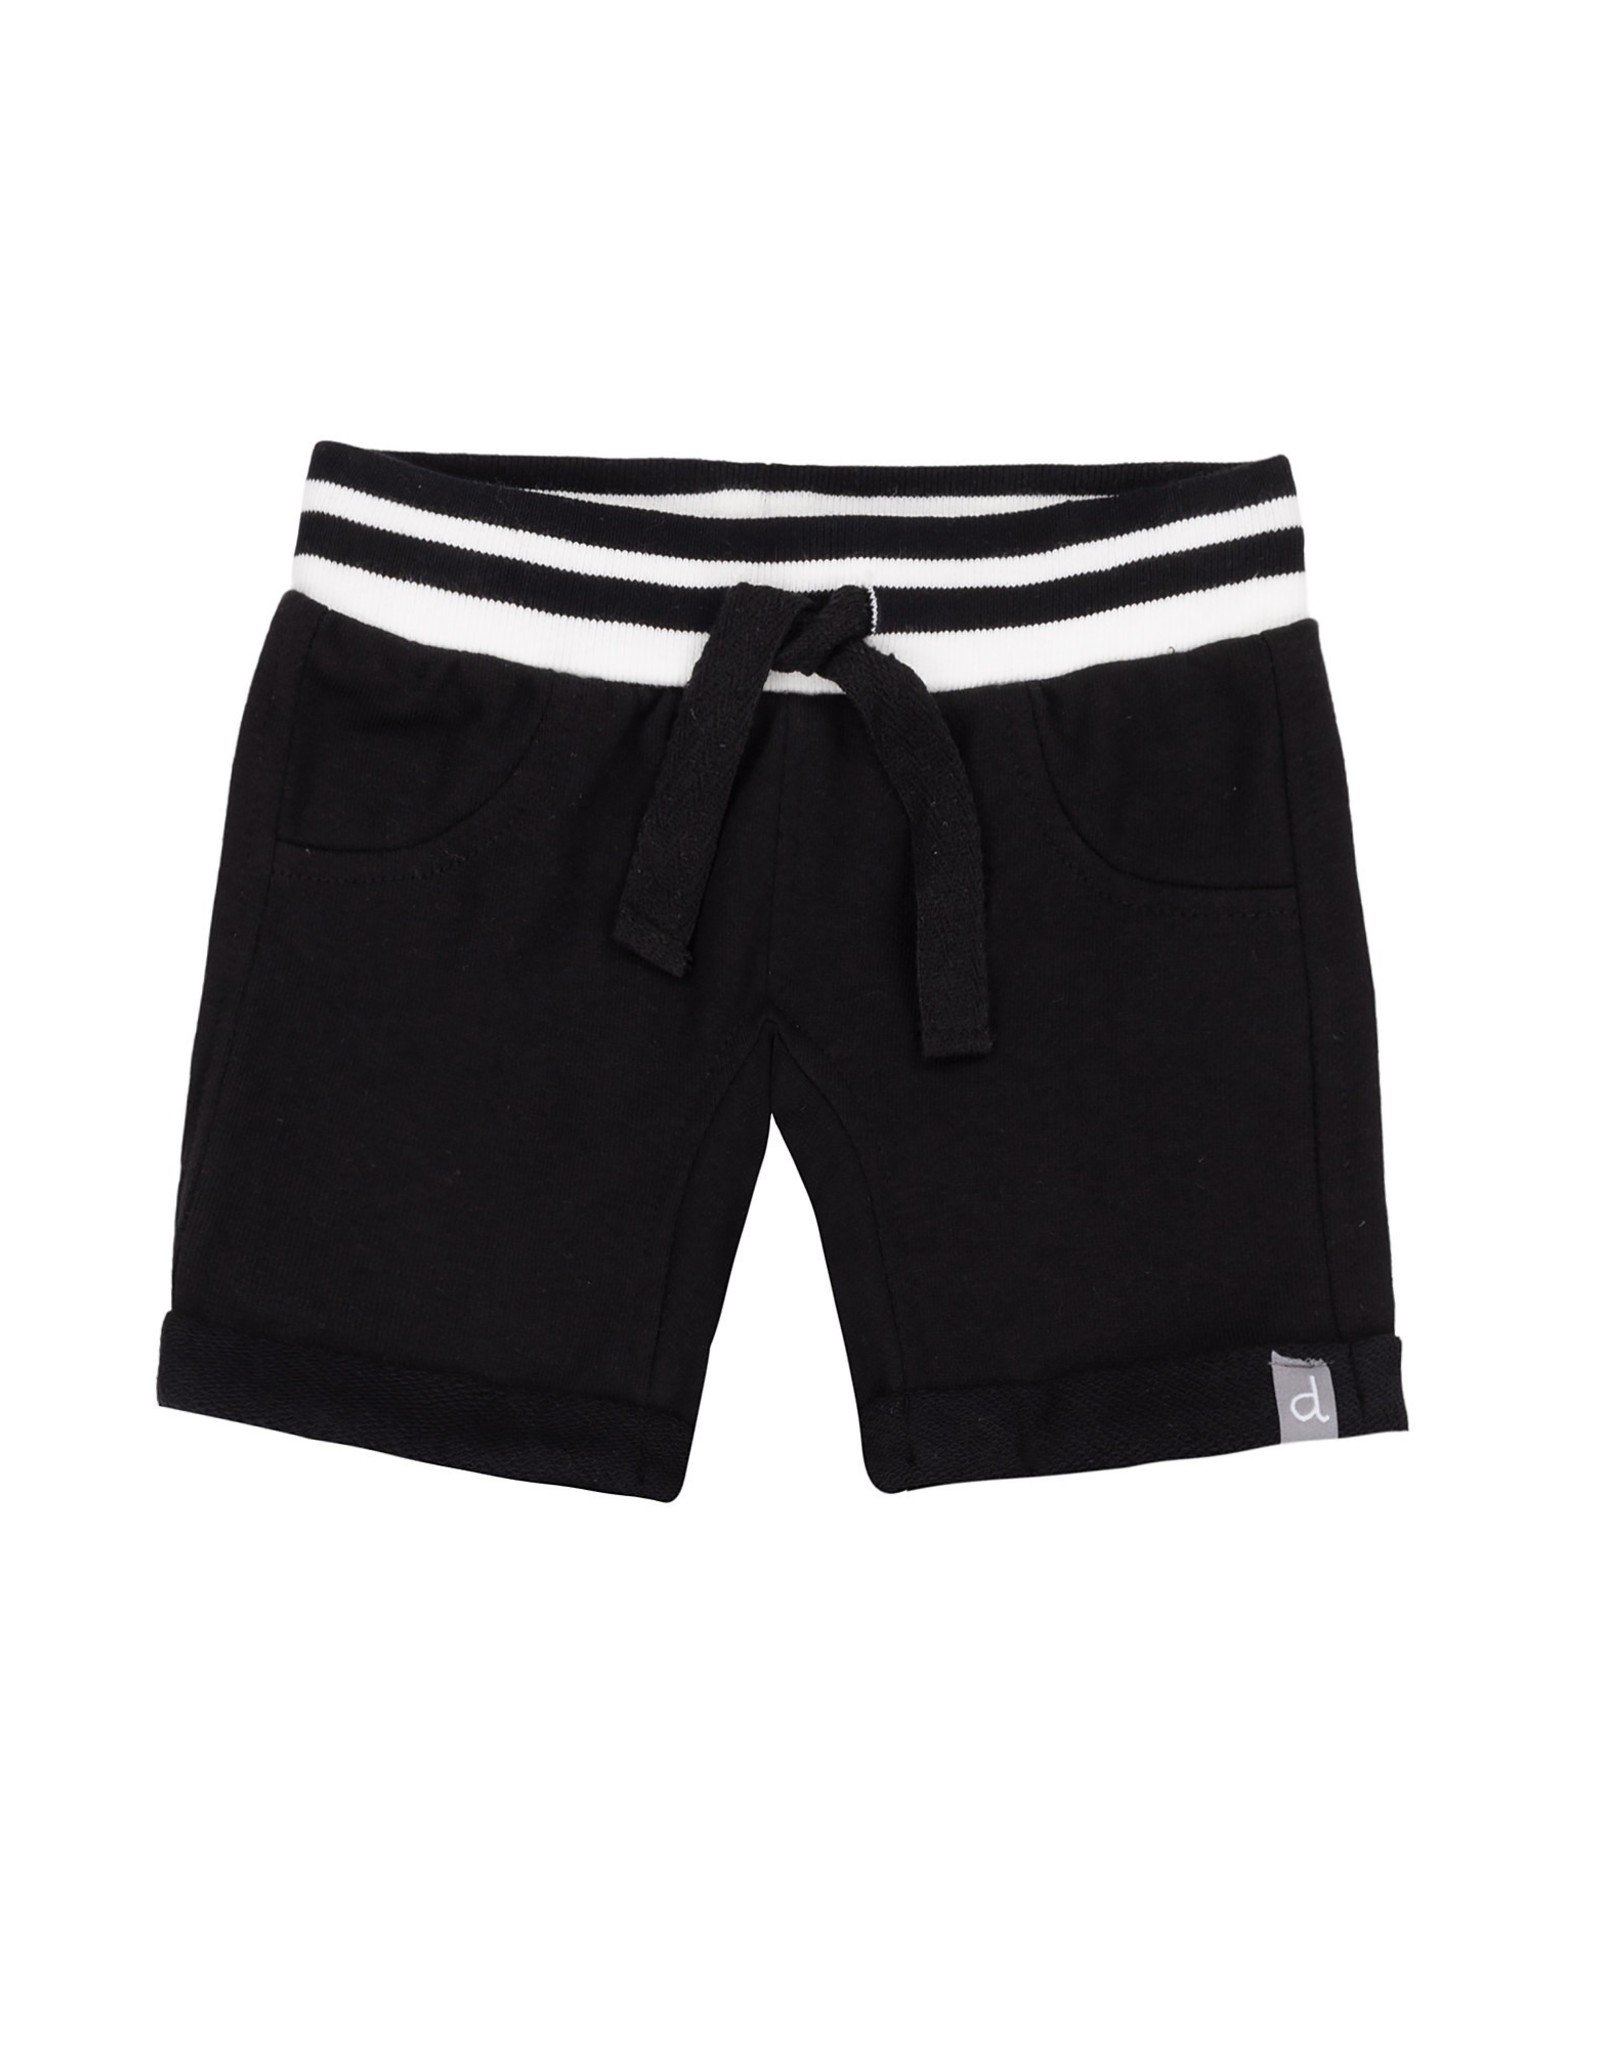 DeuxParDeux Black French Terry Bermuda Shorts